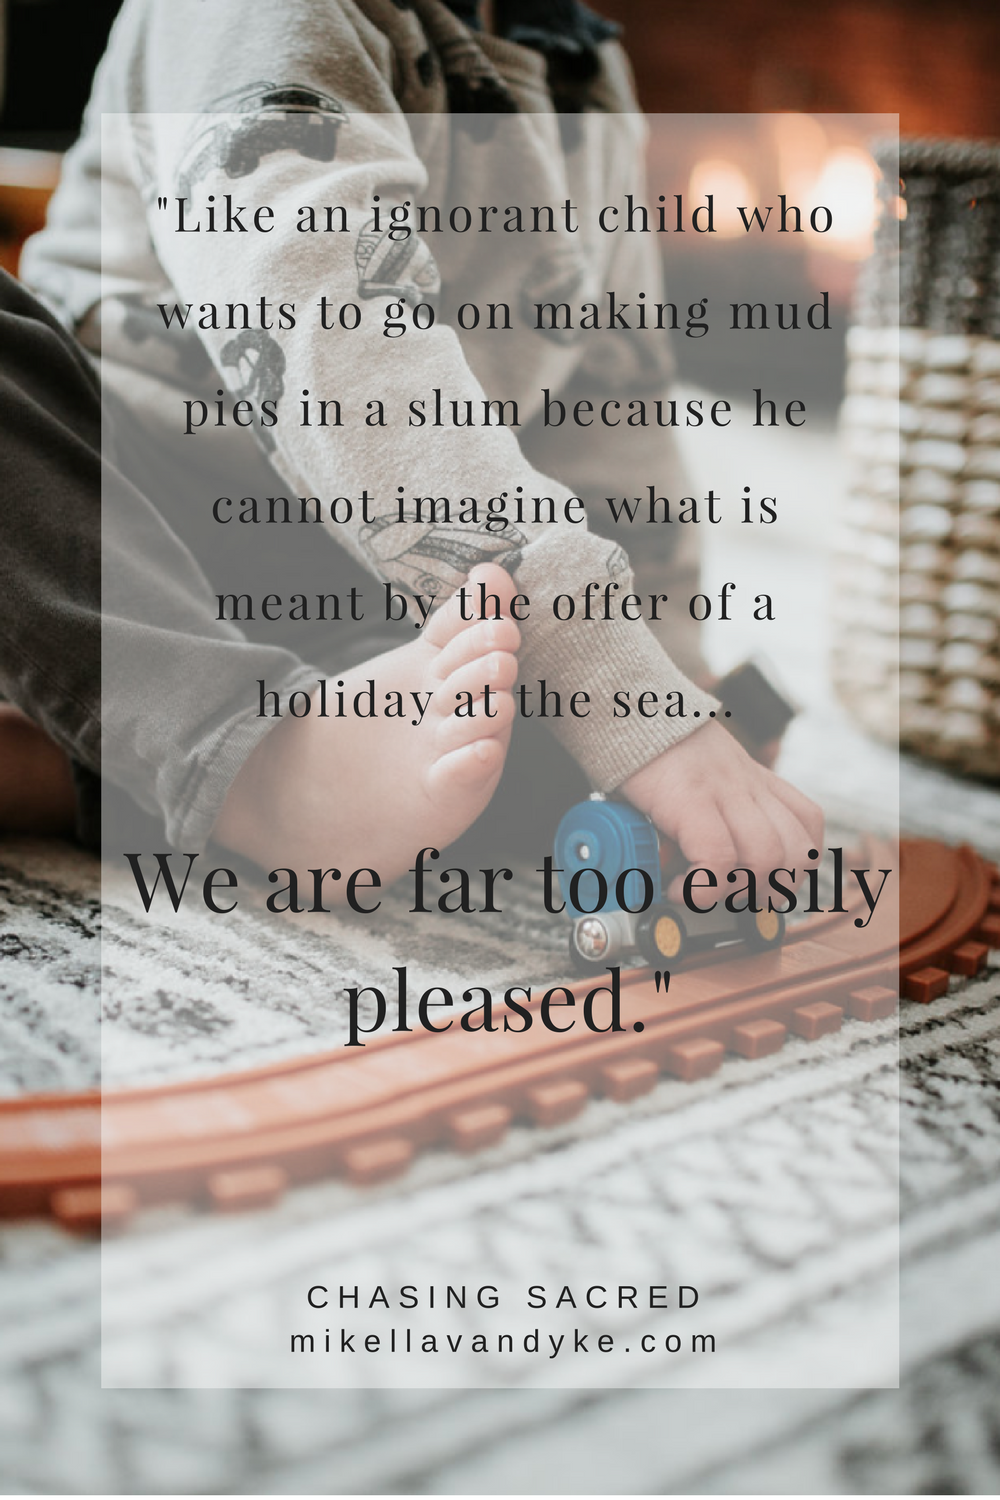 Like an ignorant child who wants to go on making mud pies in a slum because he cannot imagine what is meant by the offer of a holiday at the sea